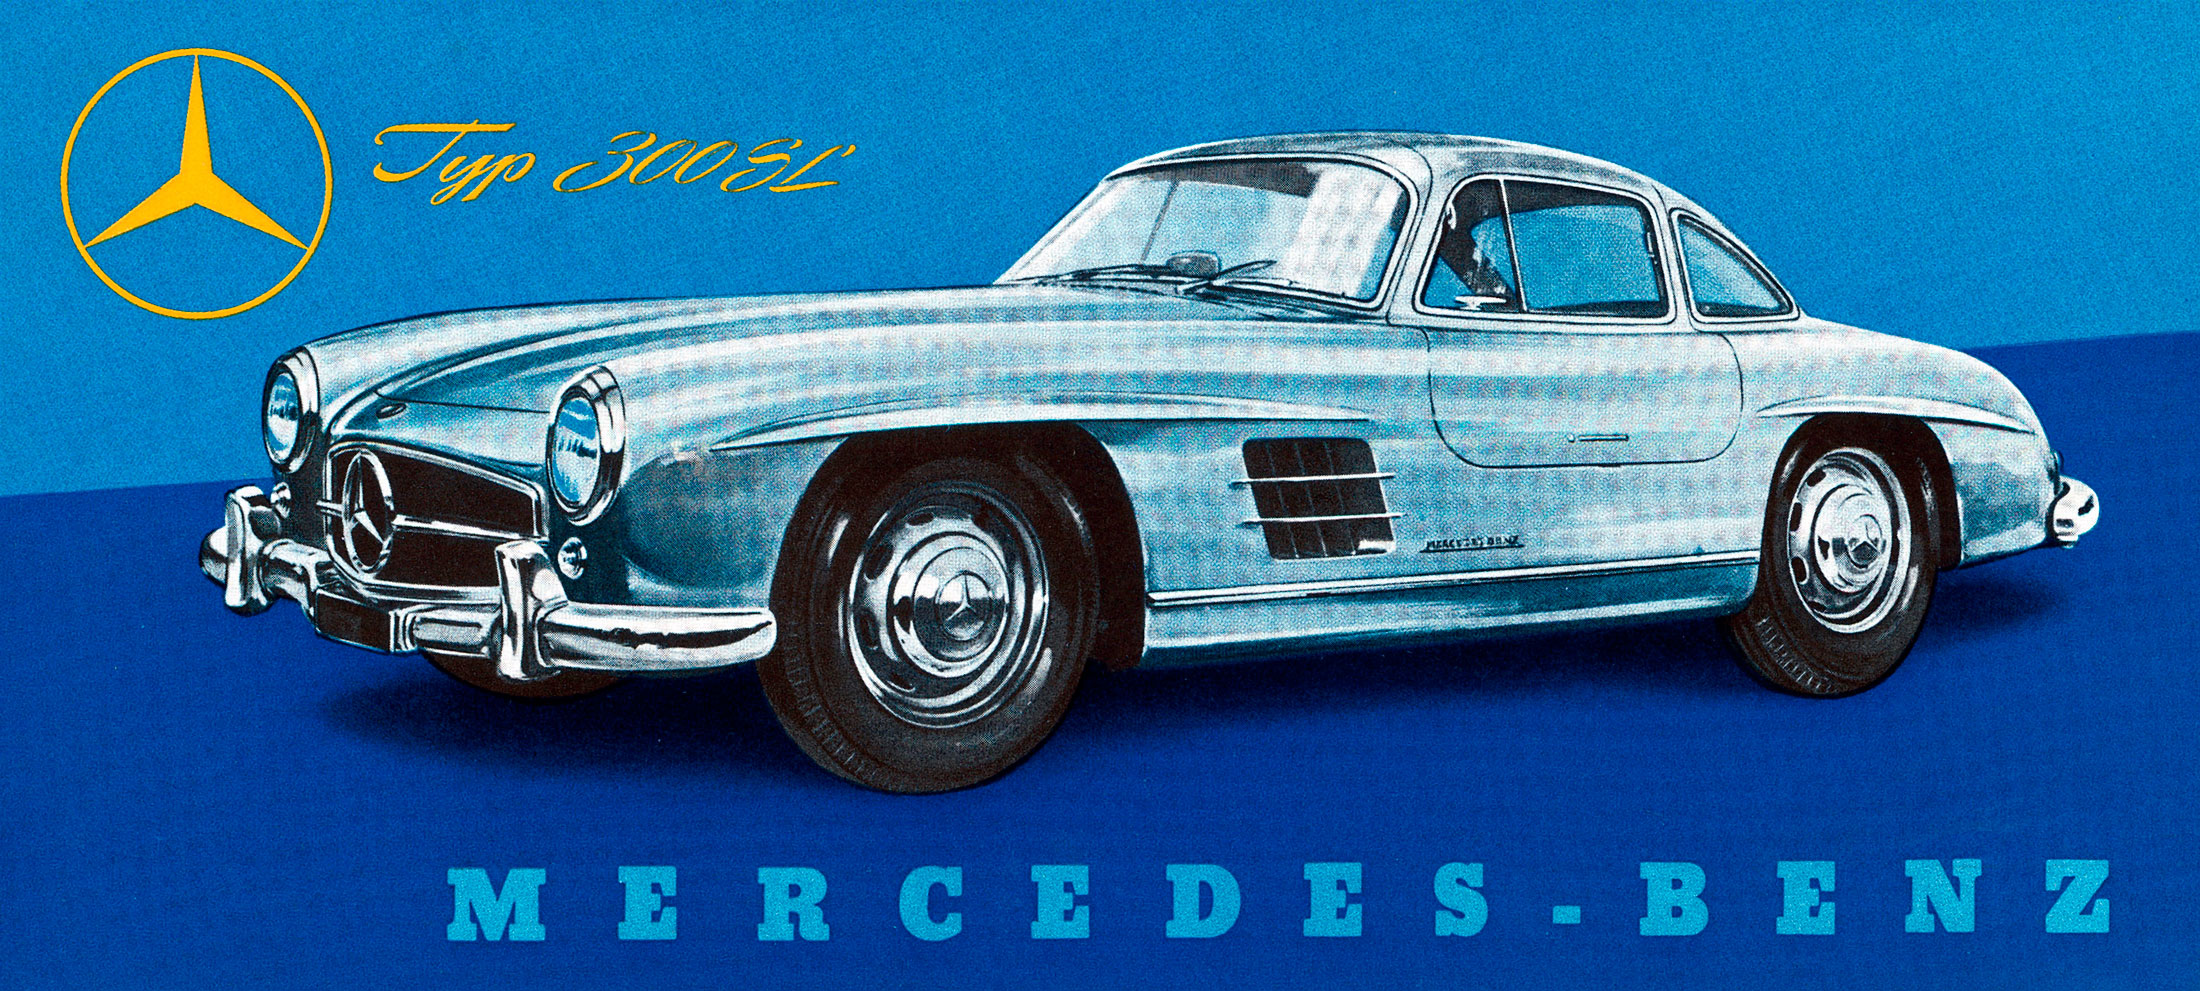 The Mercedes 300 SL Is Hotter Than Ever on the Vintage Market ...